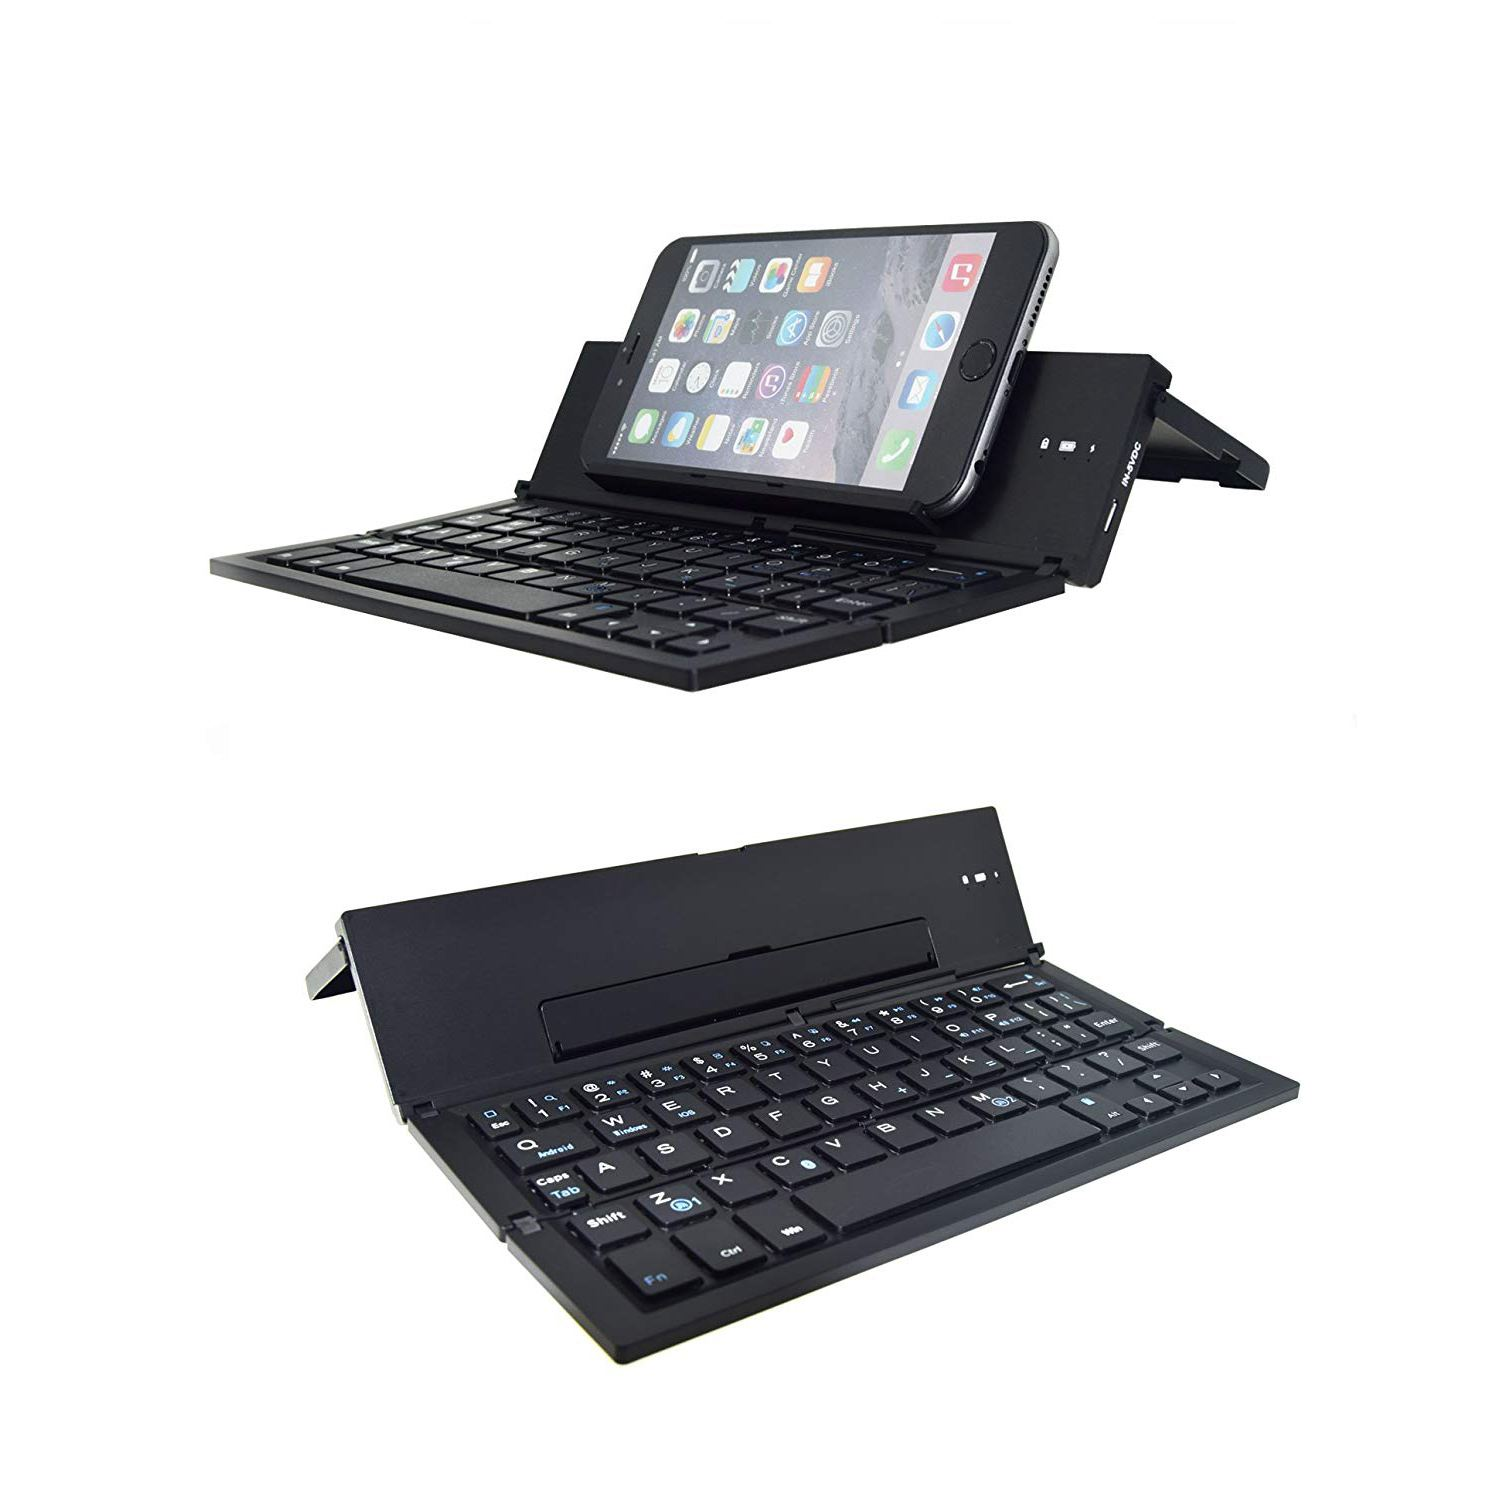 Folding Bluetooth Keyboard,Foldable Wireless Keyboard with Portable Pocket Size, Aluminum Alloy Housing, for iPad, iPhone,Andr portable pocket folding keyboard aluminum bluetooth foldable wireless travel keypad for iphone ipad macbook tablet keyboard